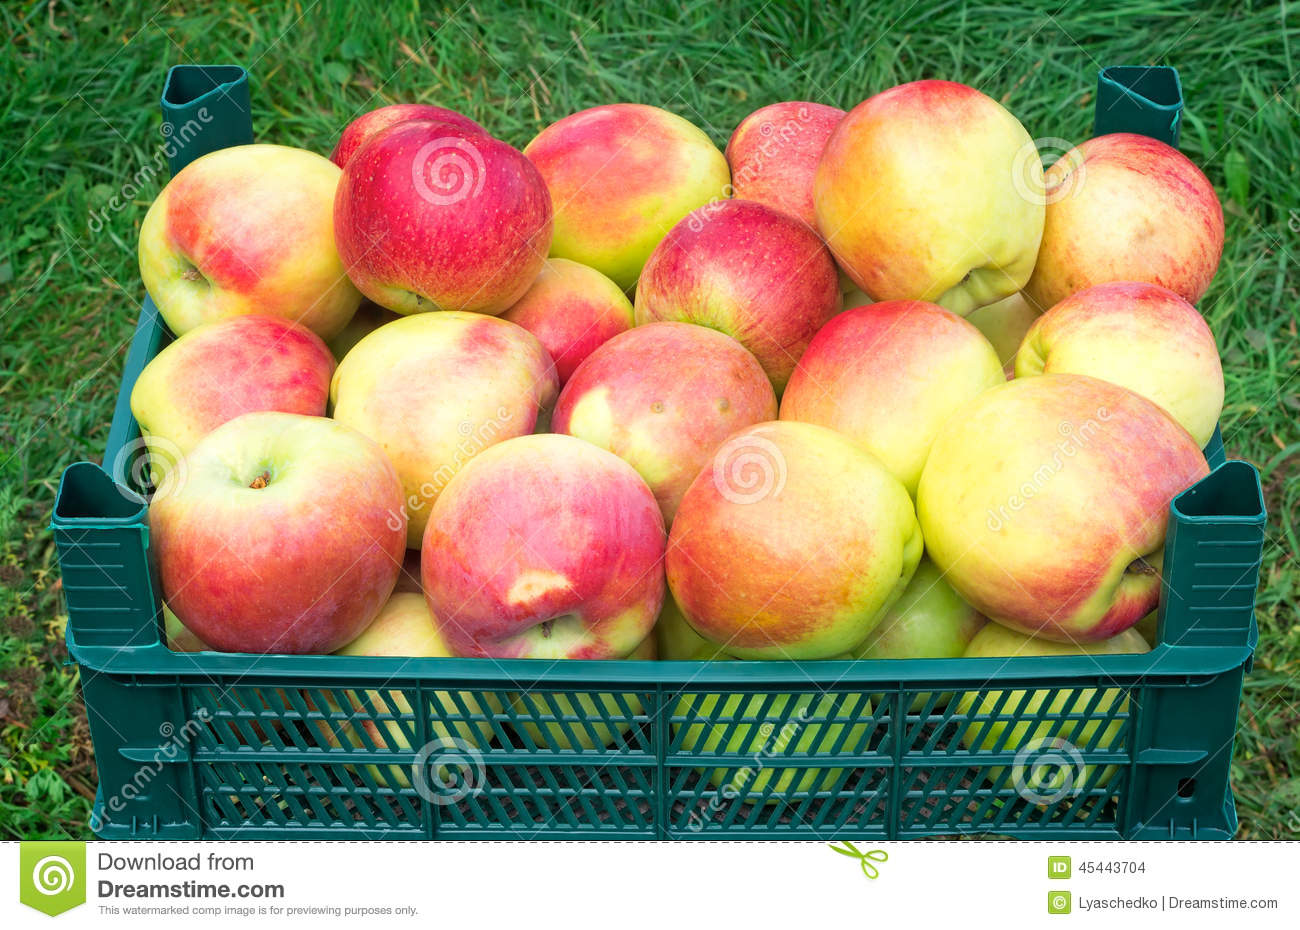 Large Mature Apples In The Container For Storage.